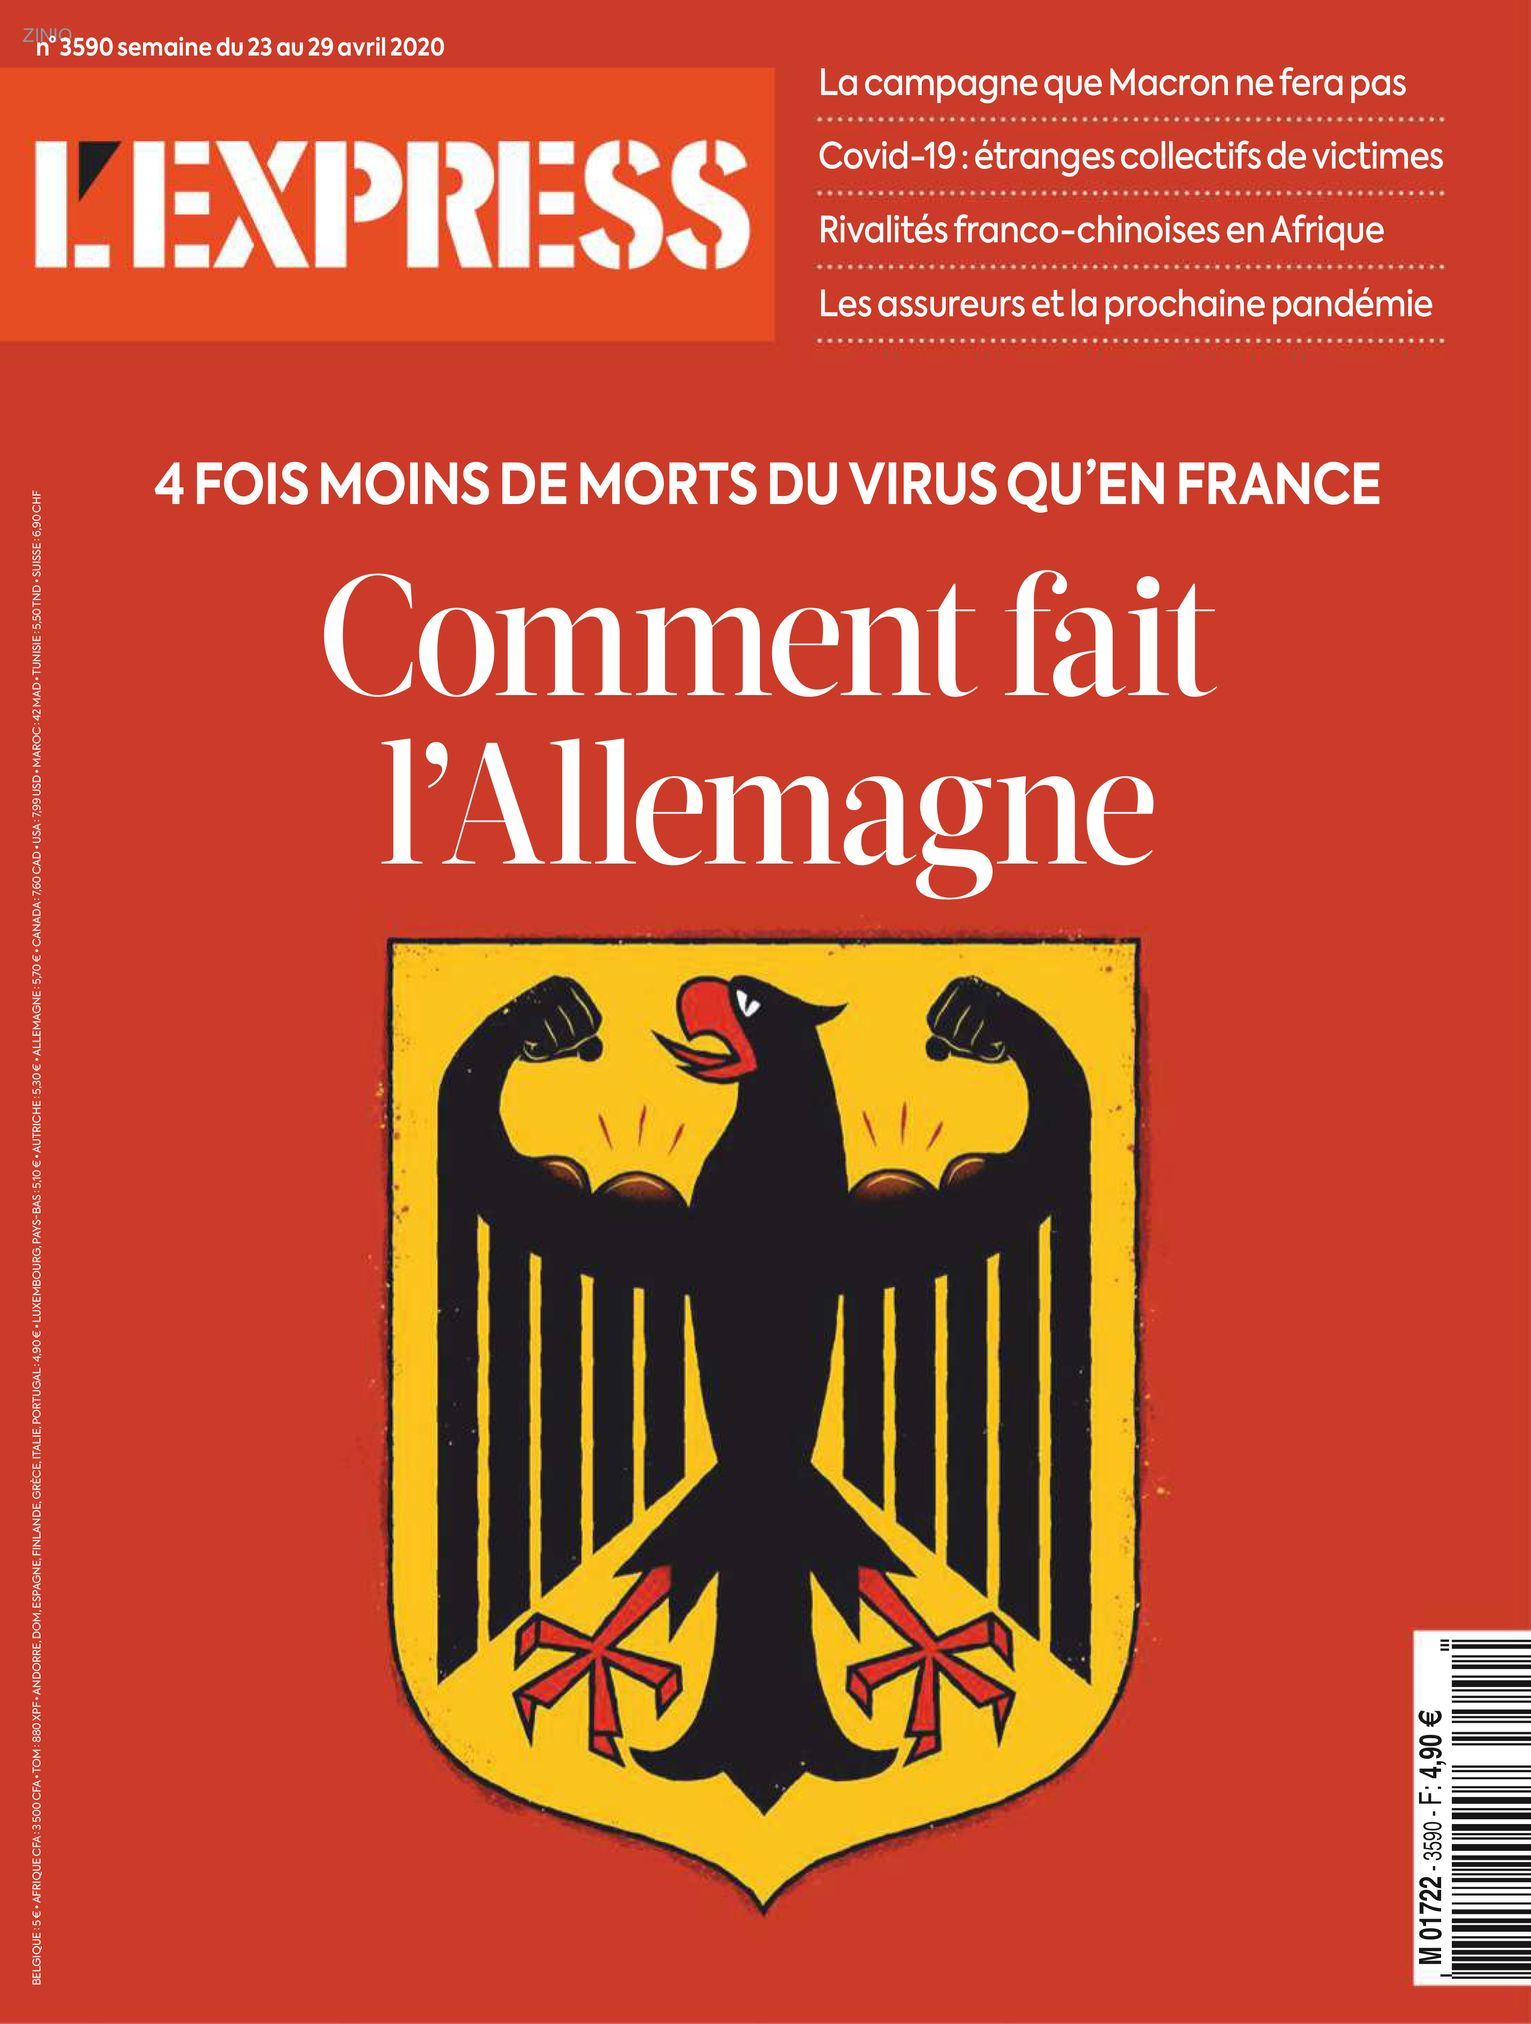 garance-illustration-LExpress-How-is-germany-doing_web